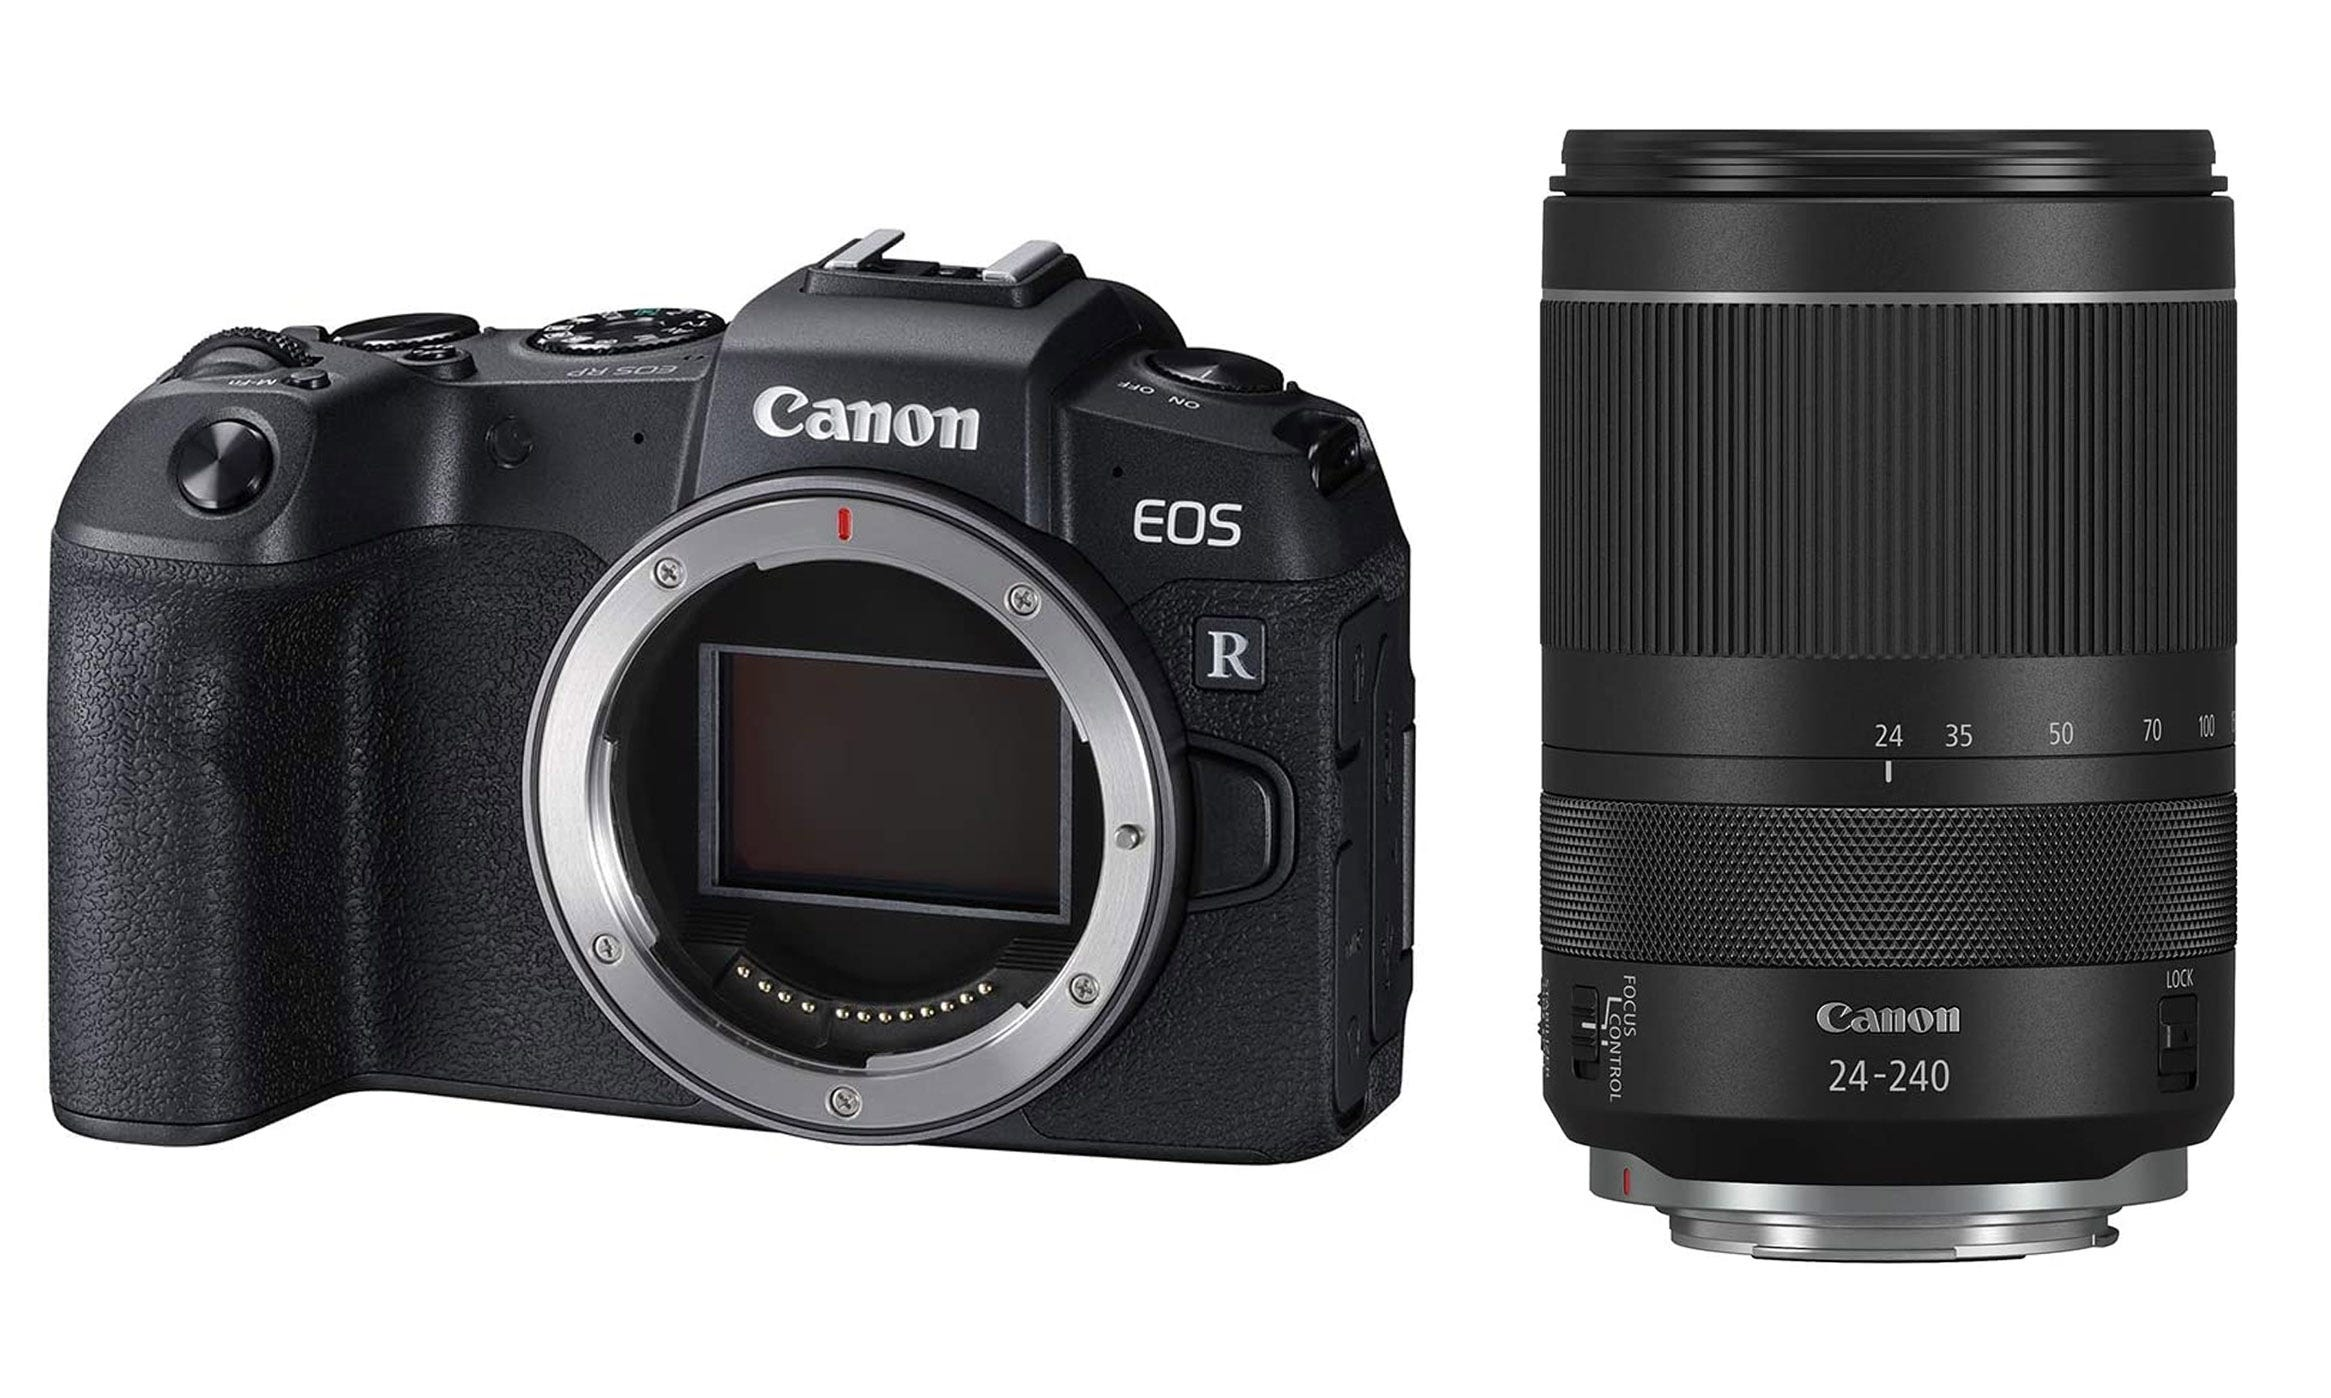 Canon EOS RP camera and 24-240mm lens